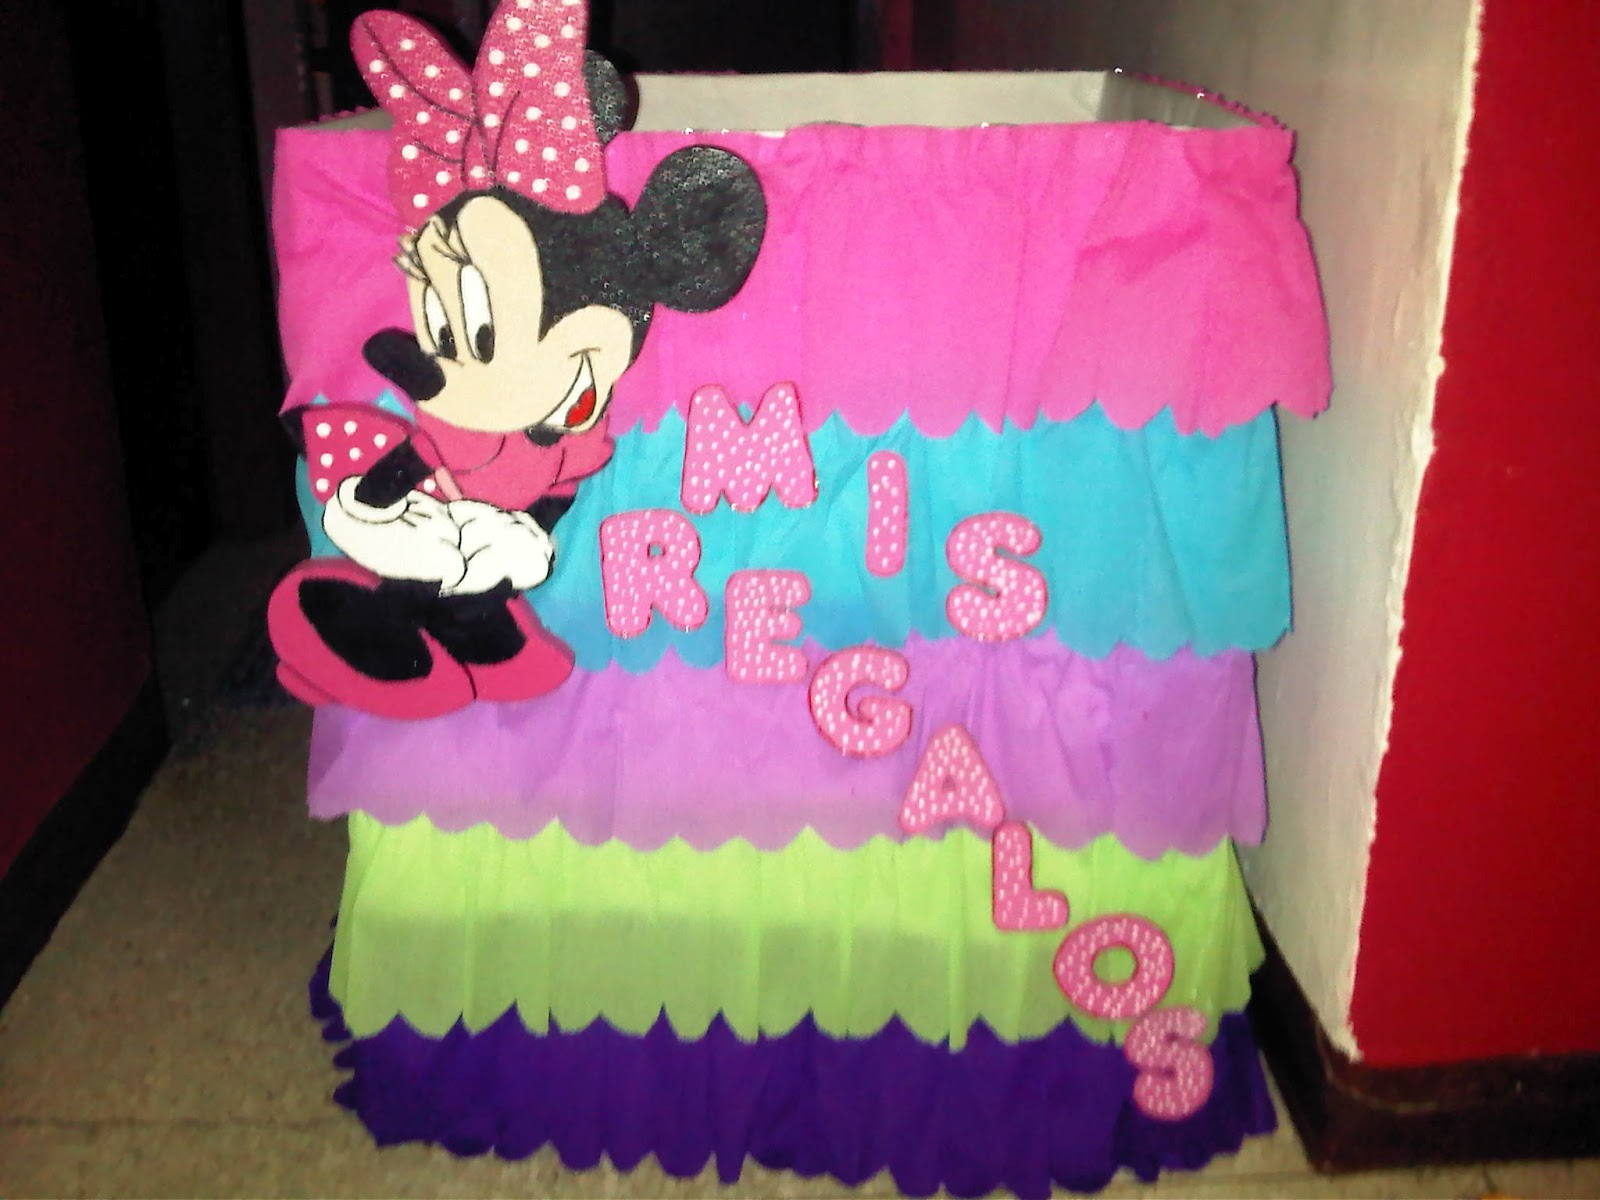 FKP: Decoración y piñata de Minnie Mouse